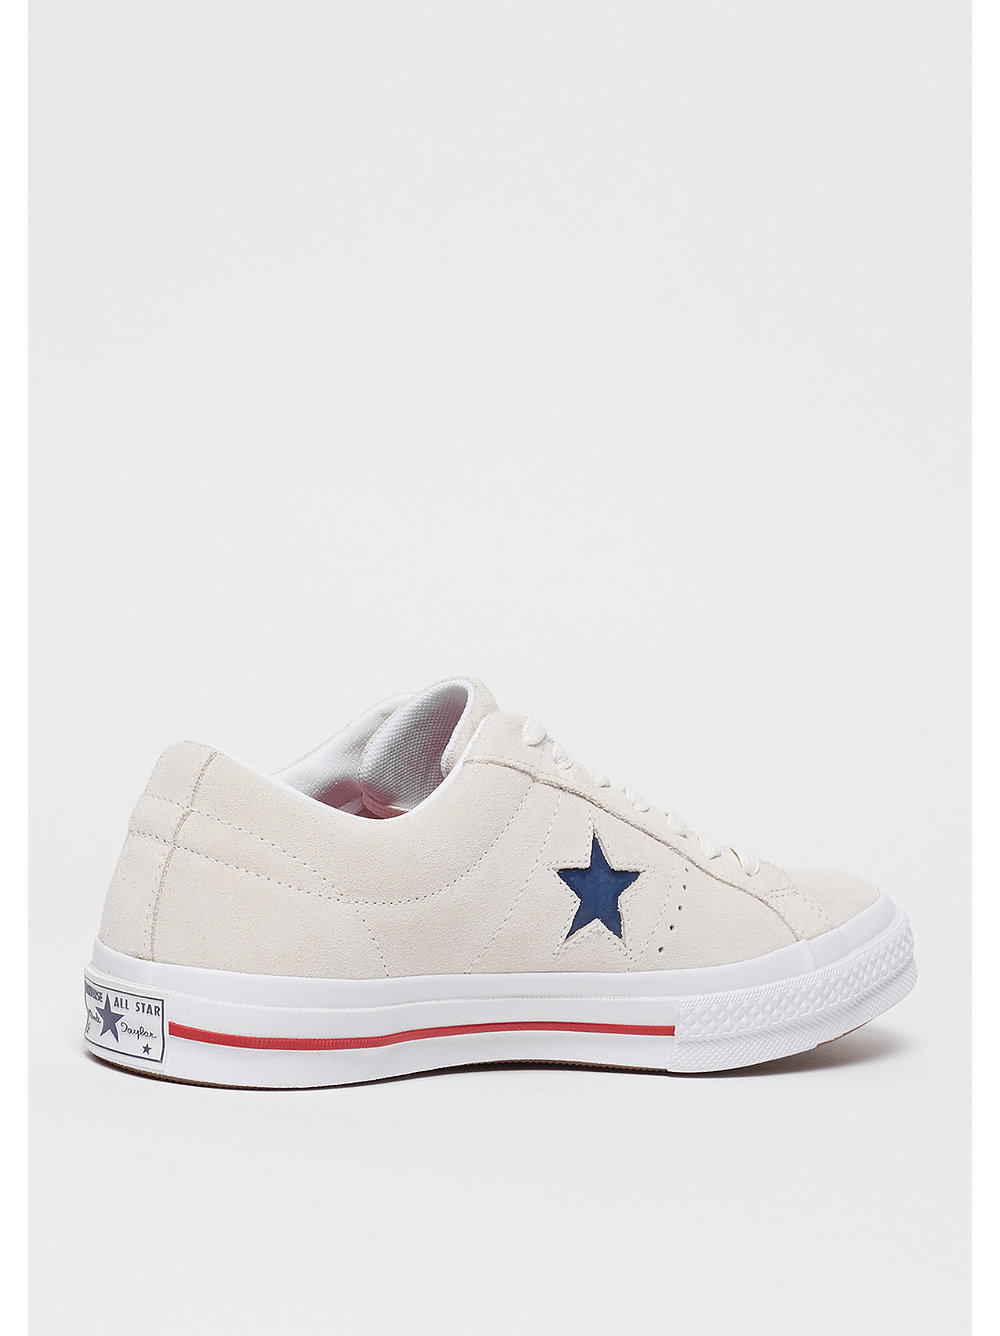 Converse One Star Ox Calzado gray/red/white